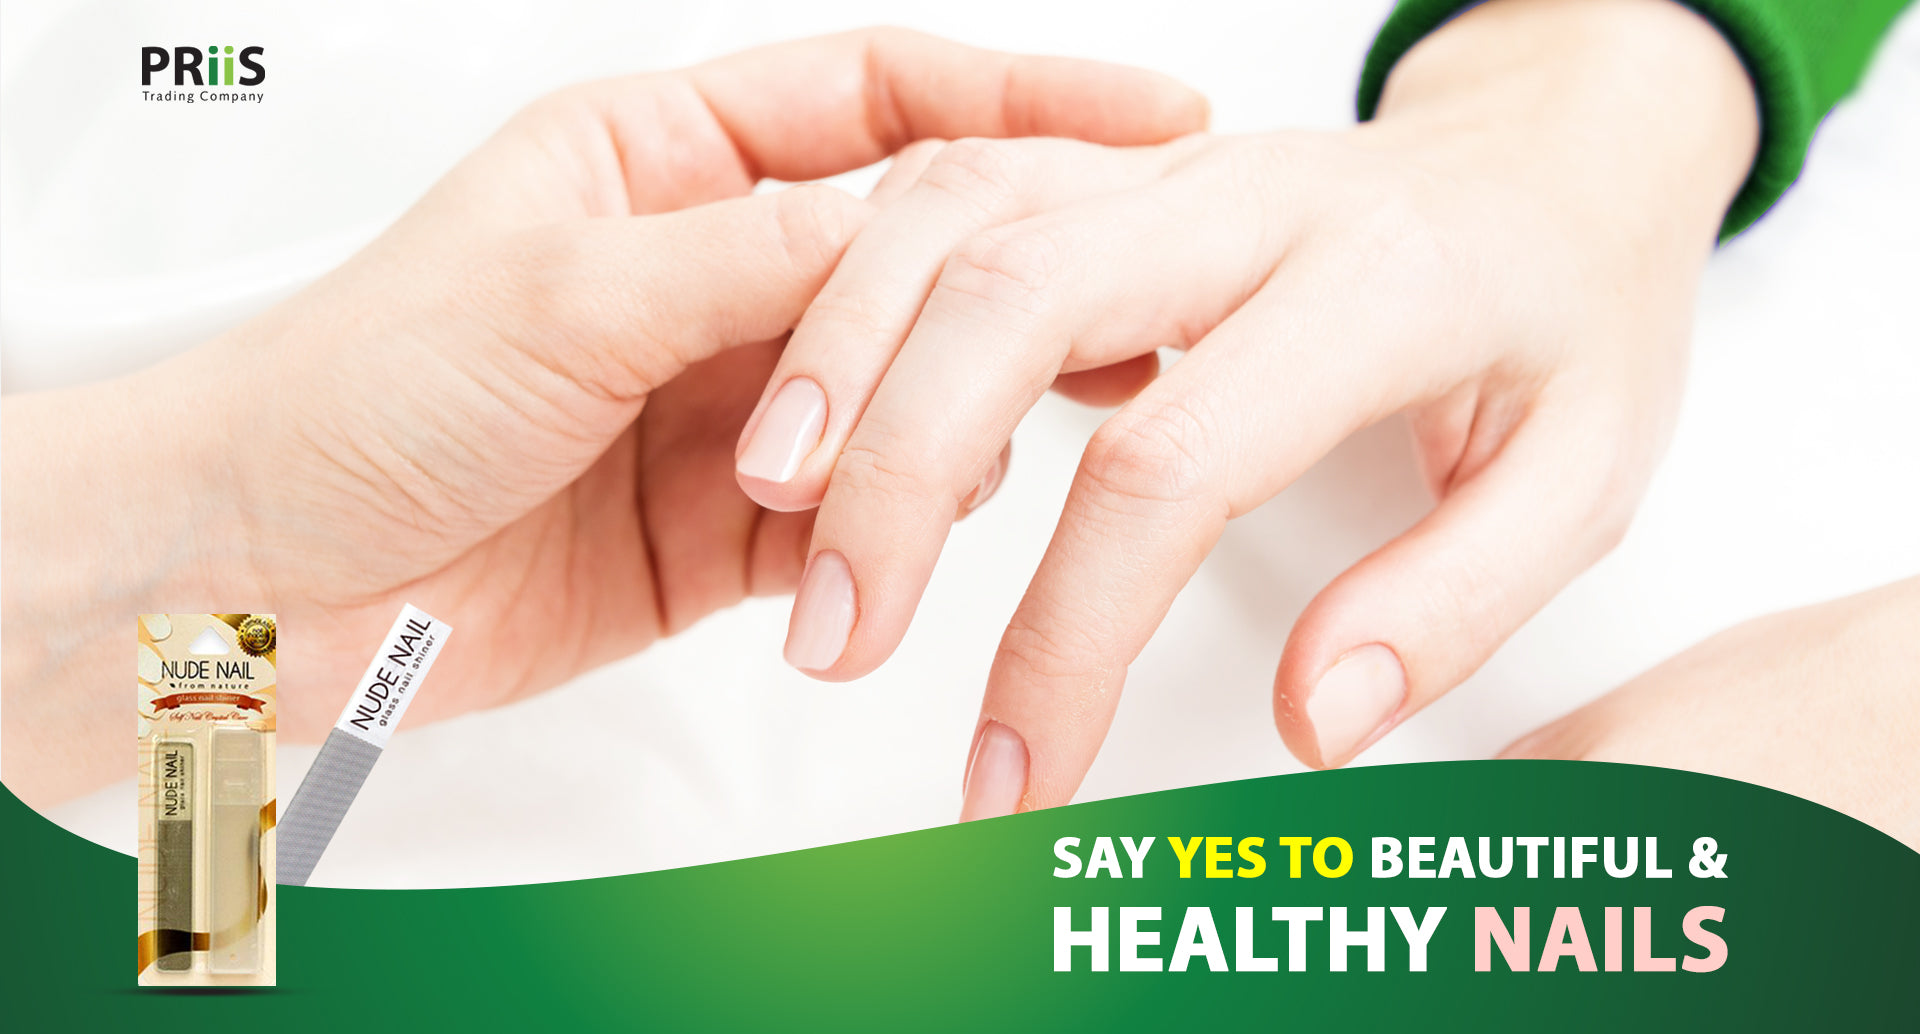 Say YES to beautiful & healthy nails